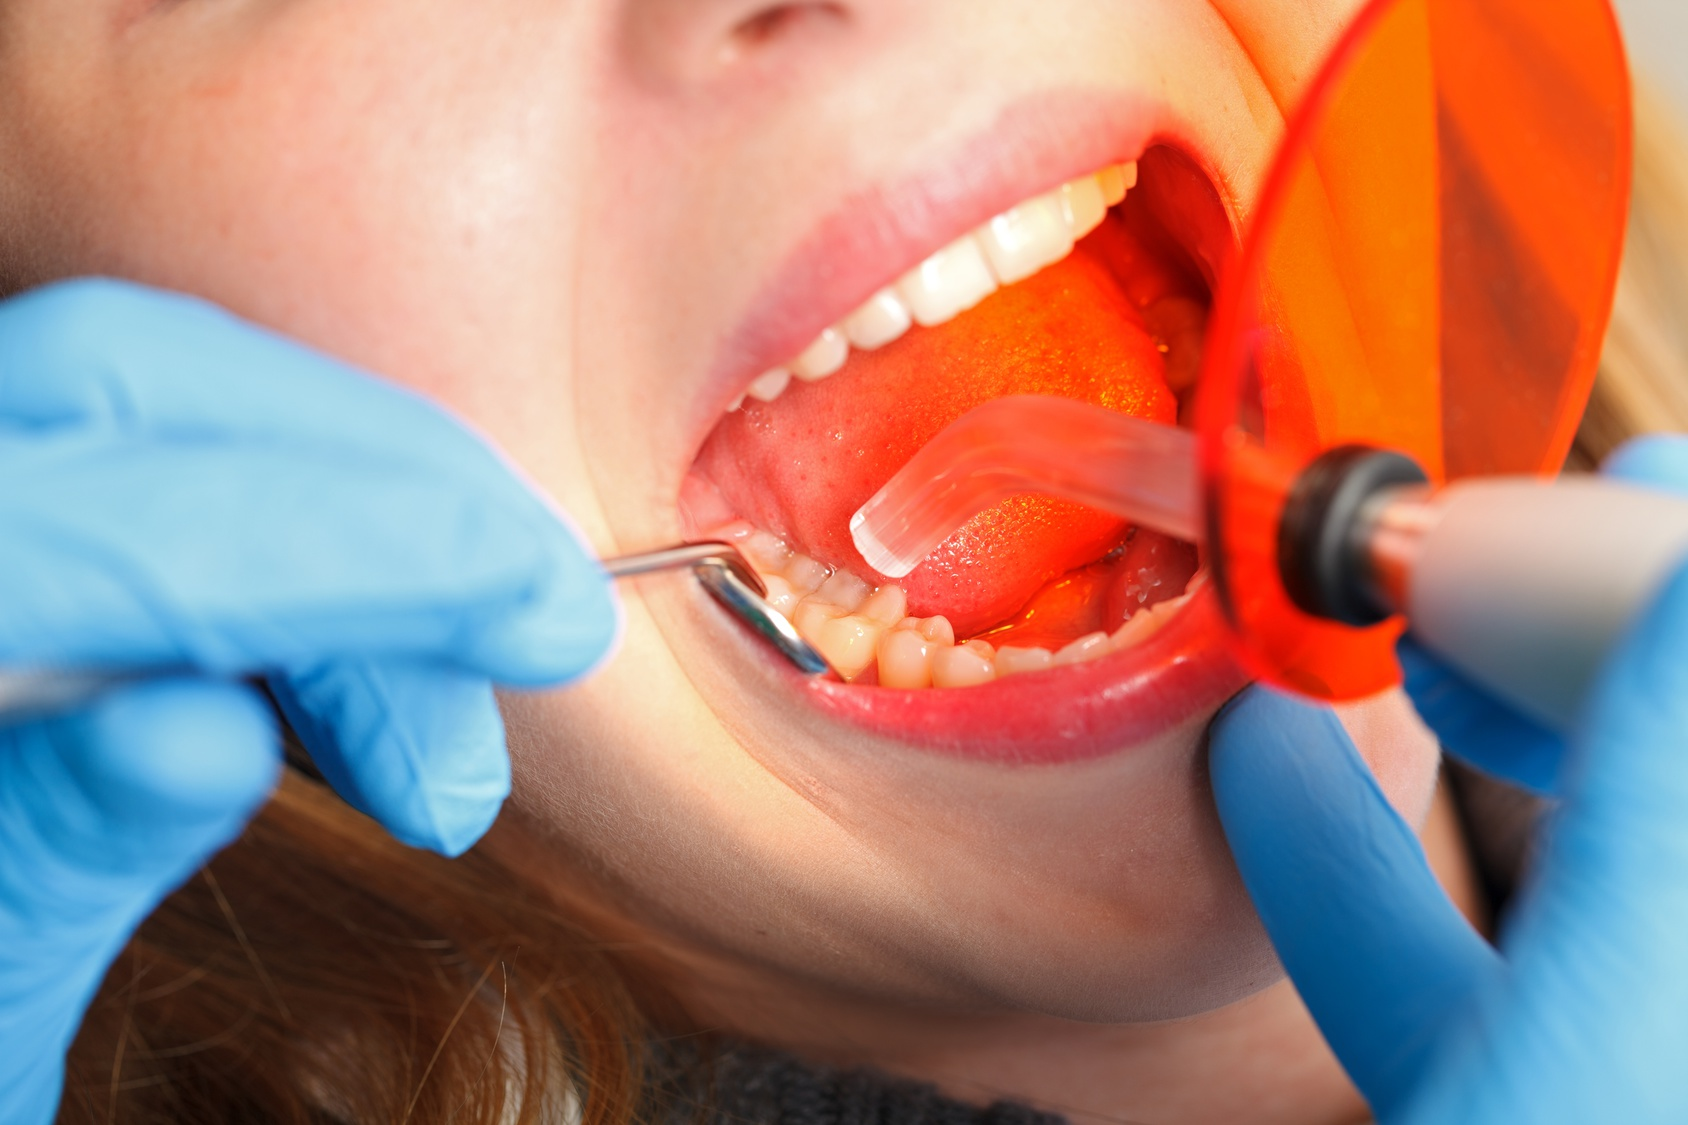 vity by removing the rotten or corroded area and then performs the tooth filling. This procedure is also used to repair broken or cracked teeth, ...